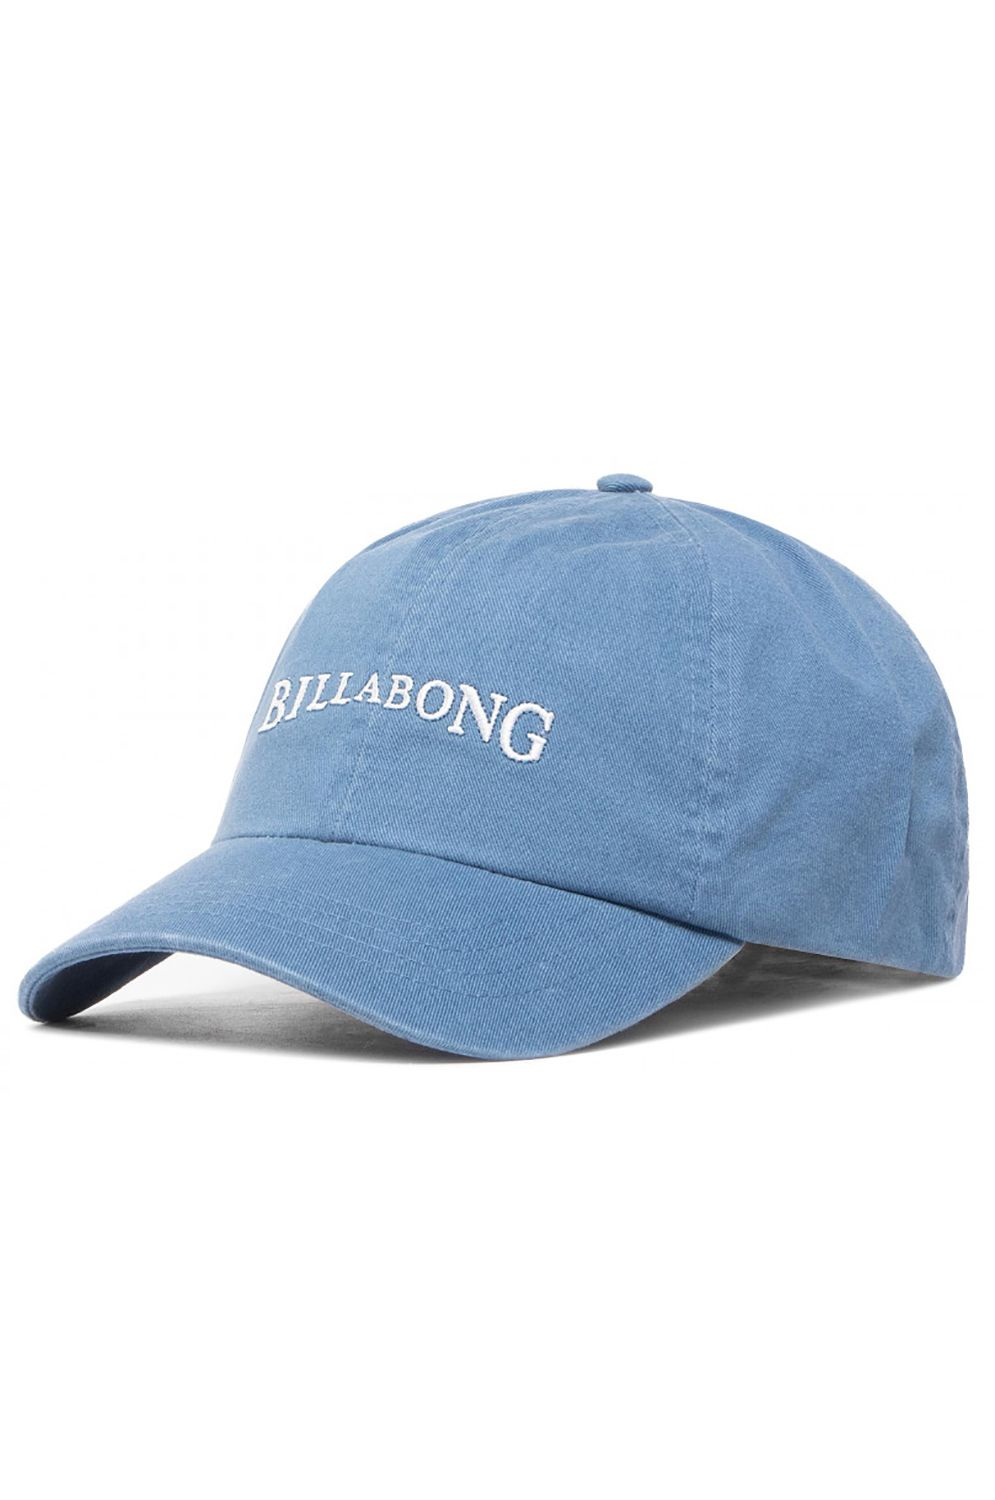 Bone Billabong ESSENTIAL CAP Surf Blue